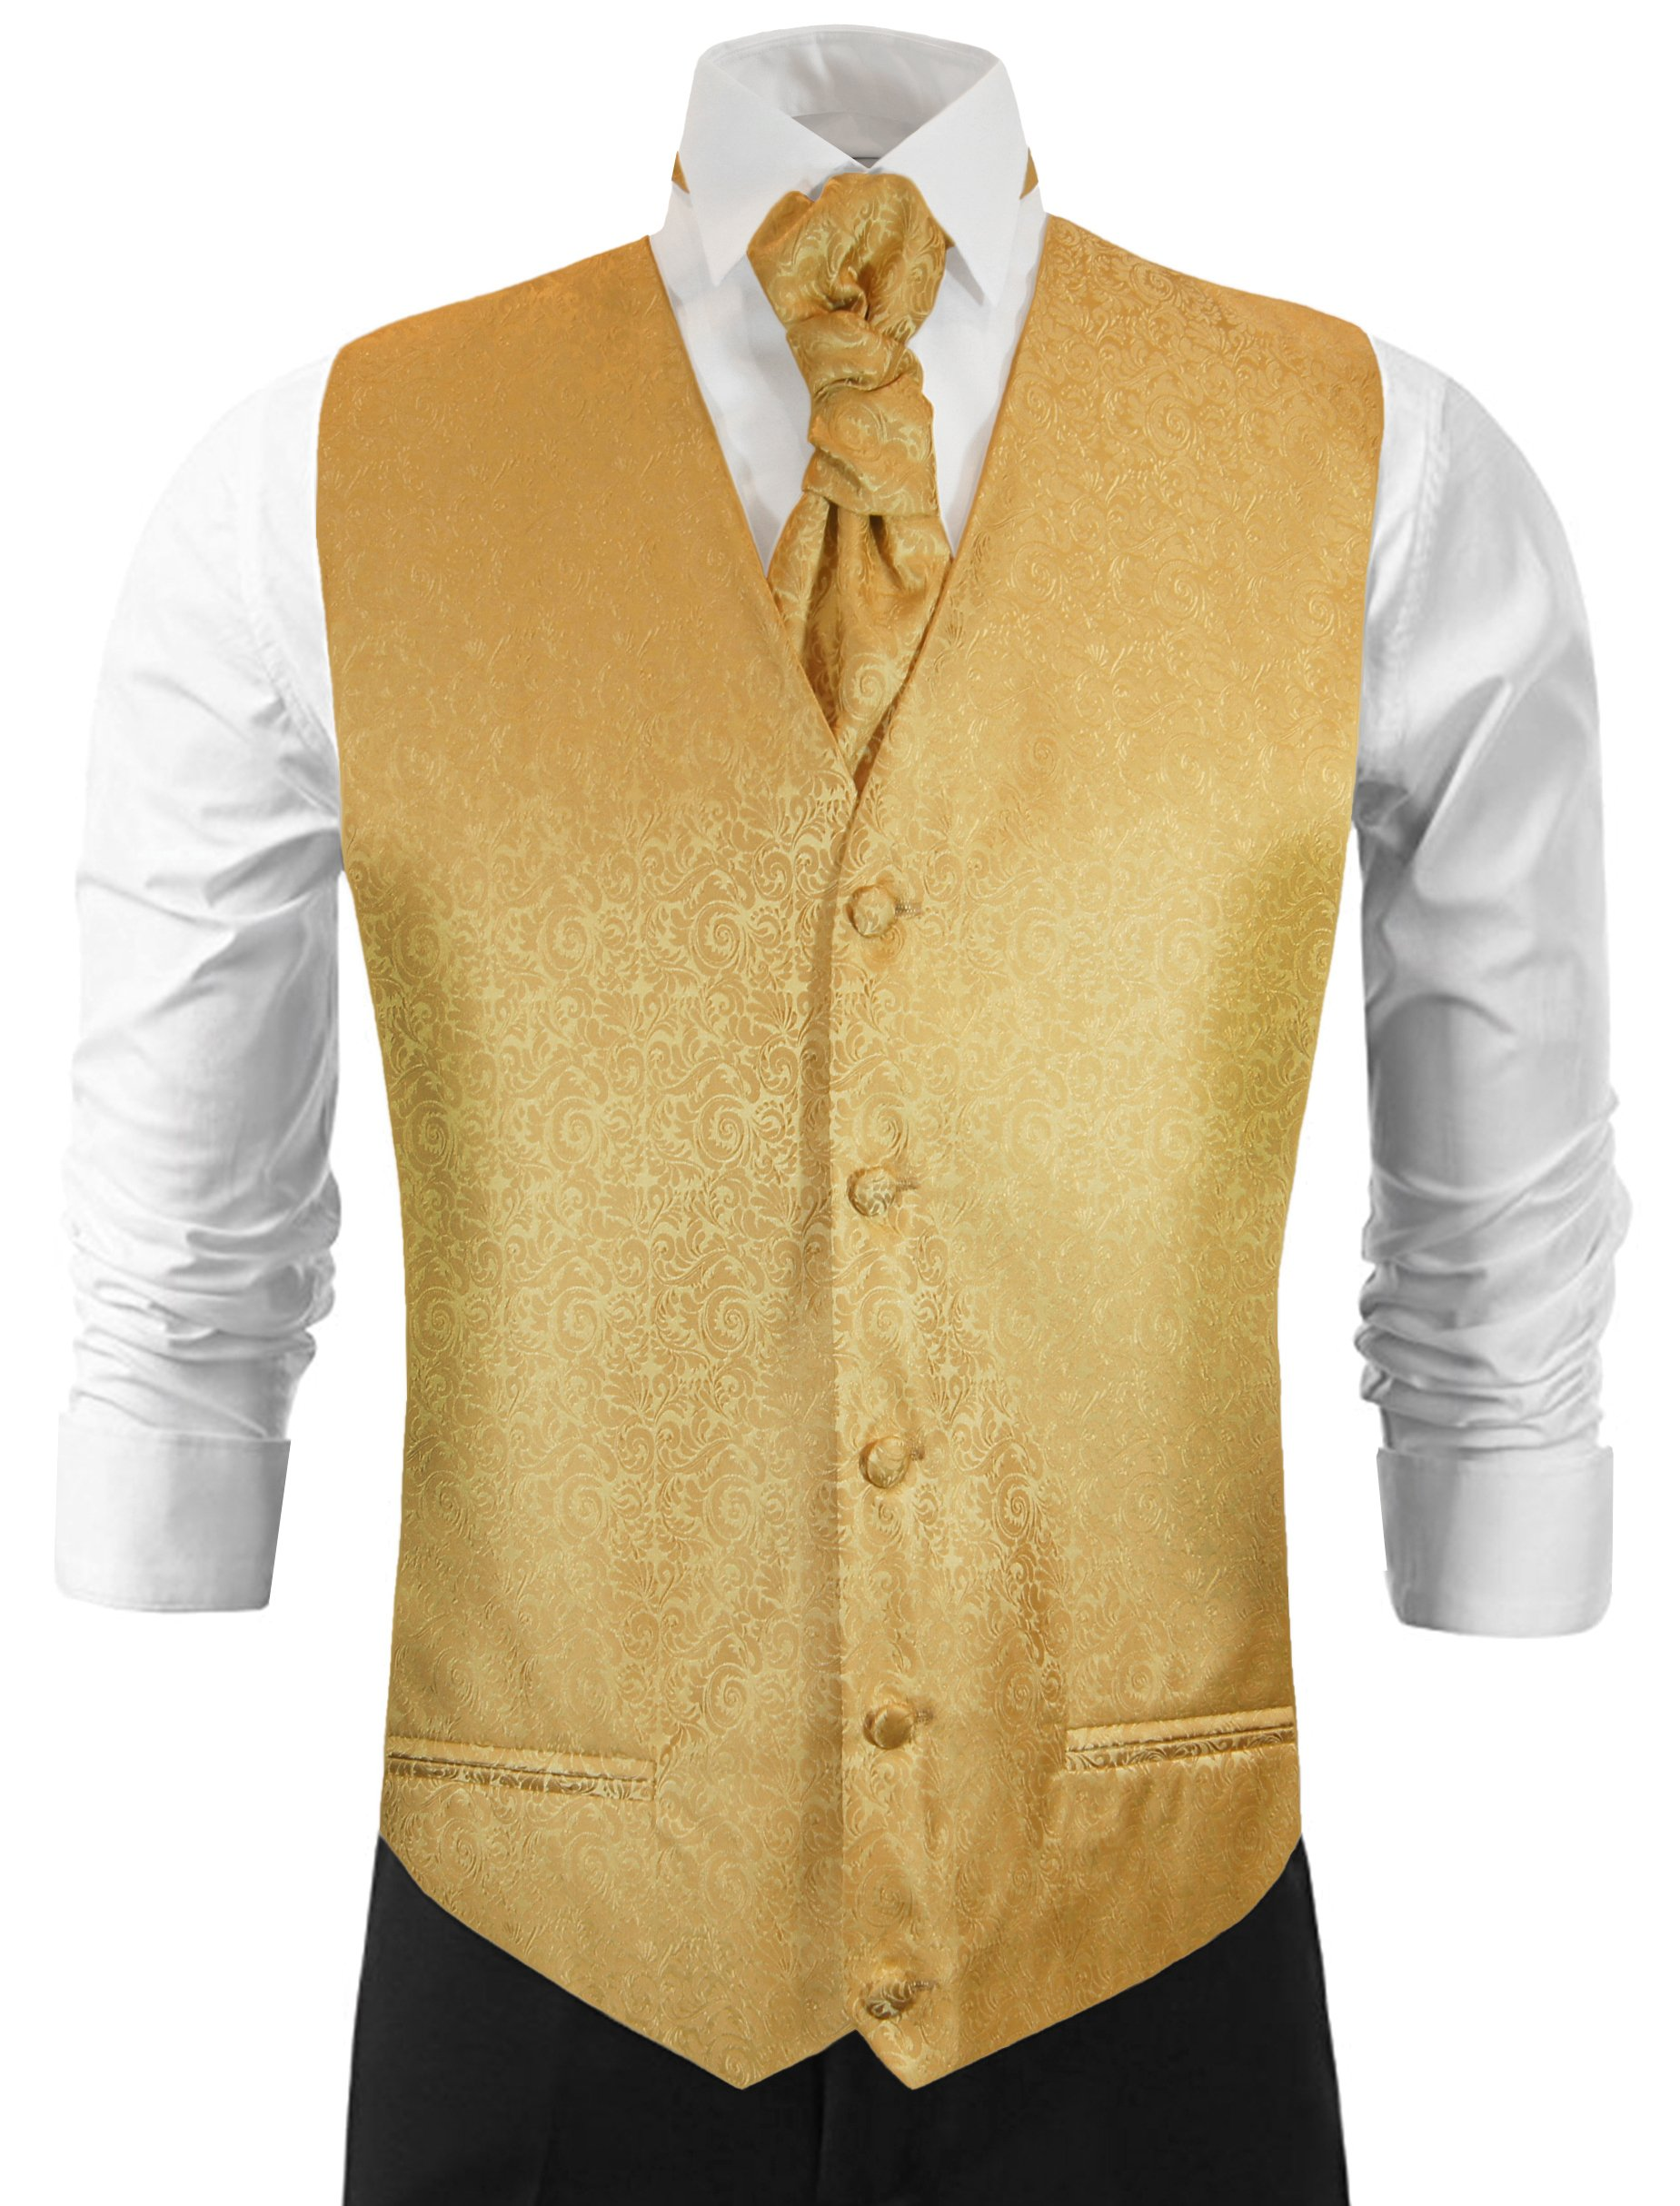 Paul Malone Gold Wedding Vest Set with Formal Tie, Pocket Square and Cufflinks